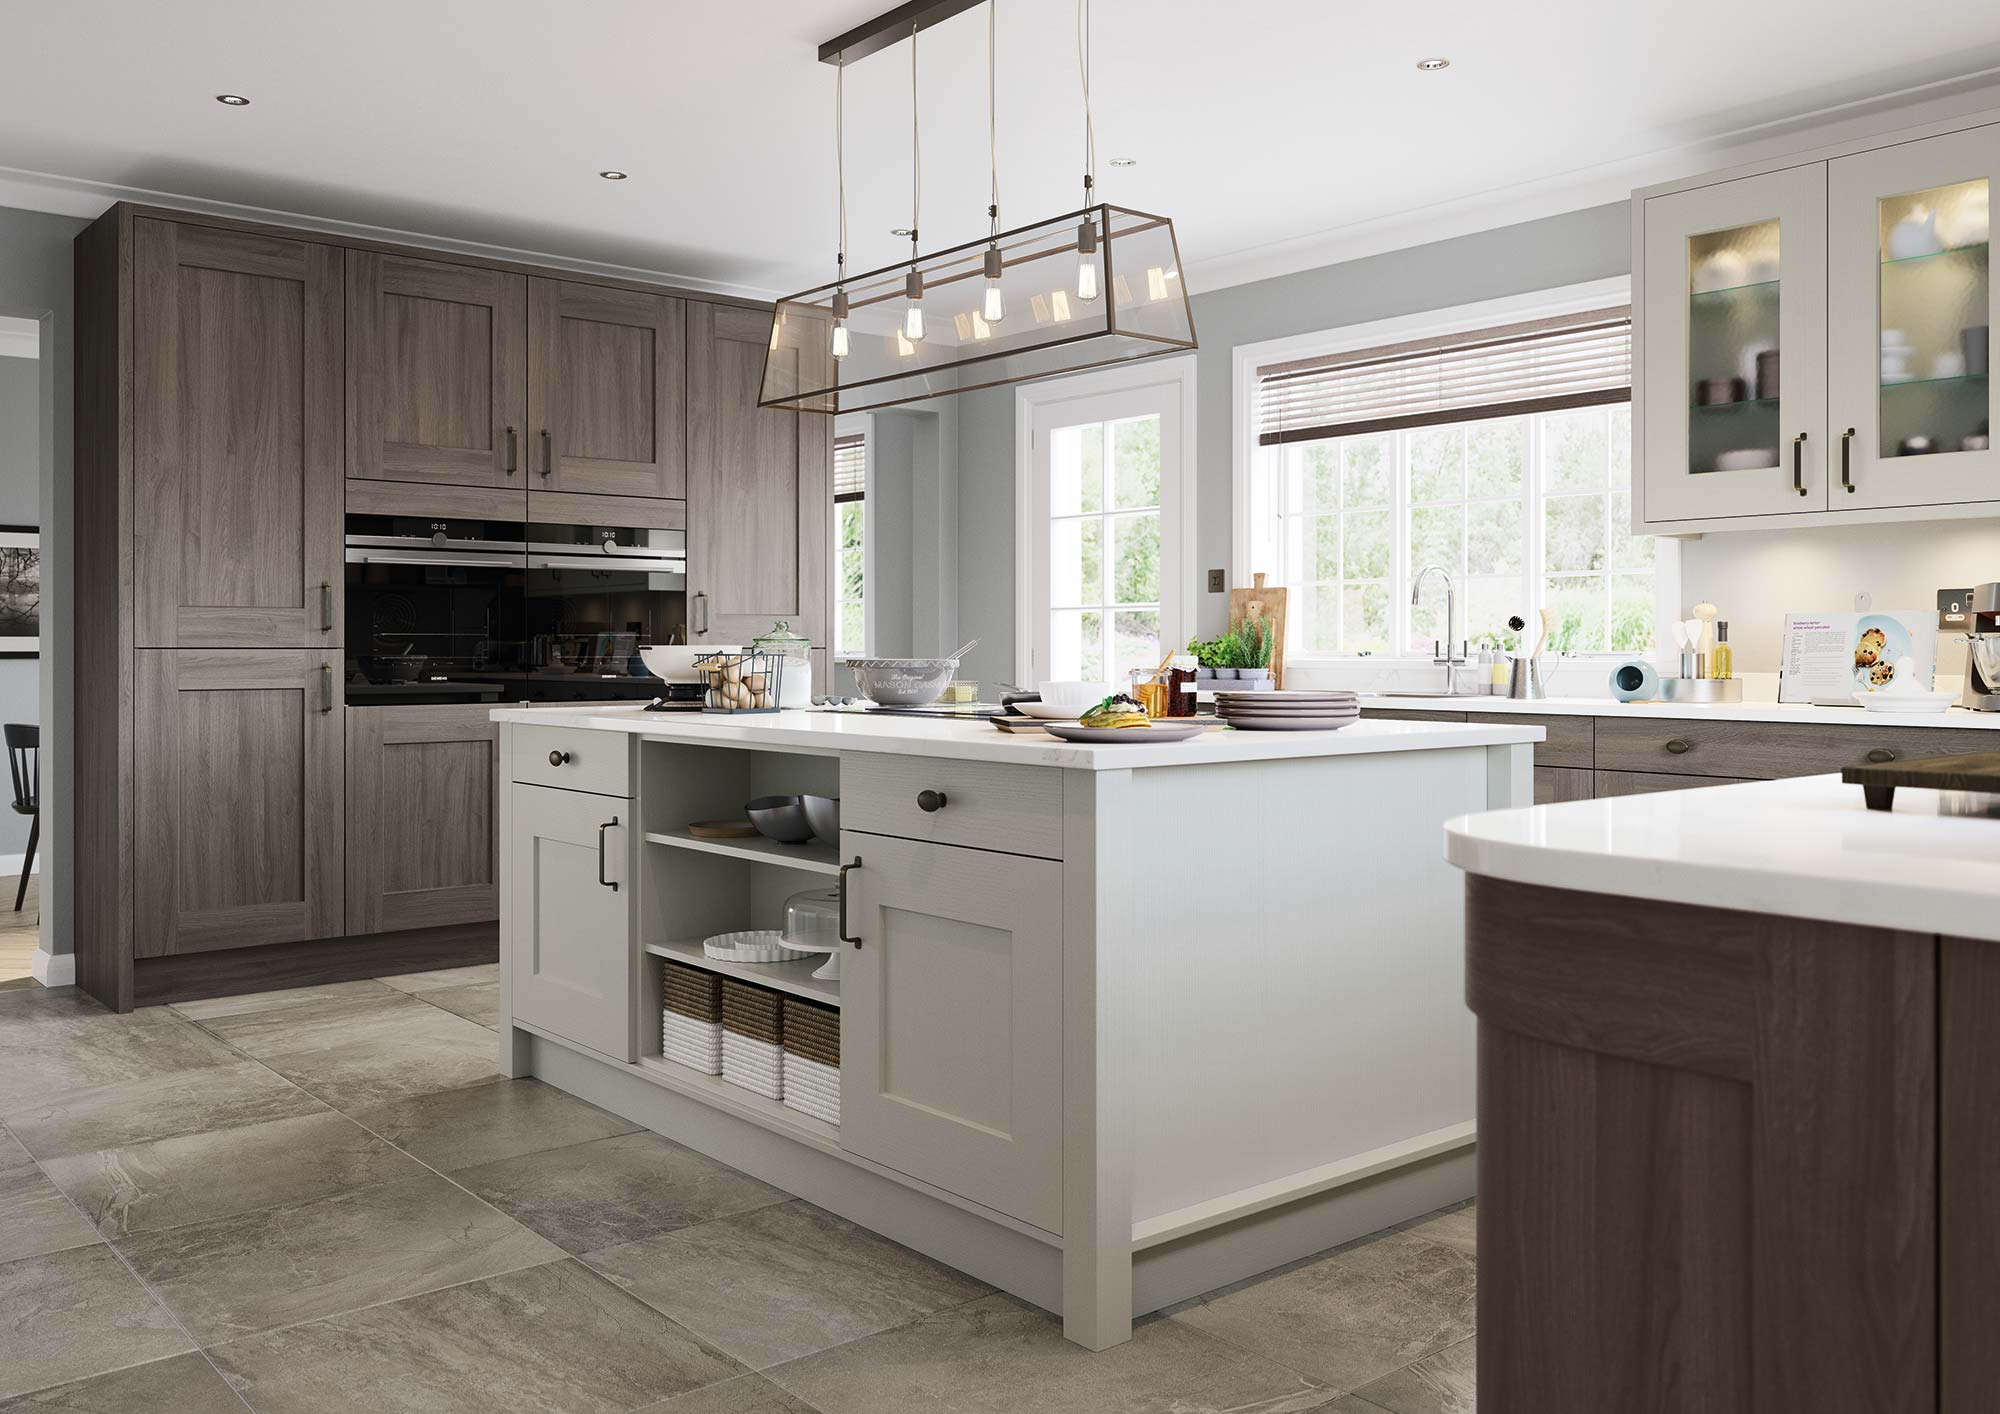 Contemporary shaker style kitchen anthracite stain and stone paint main picture